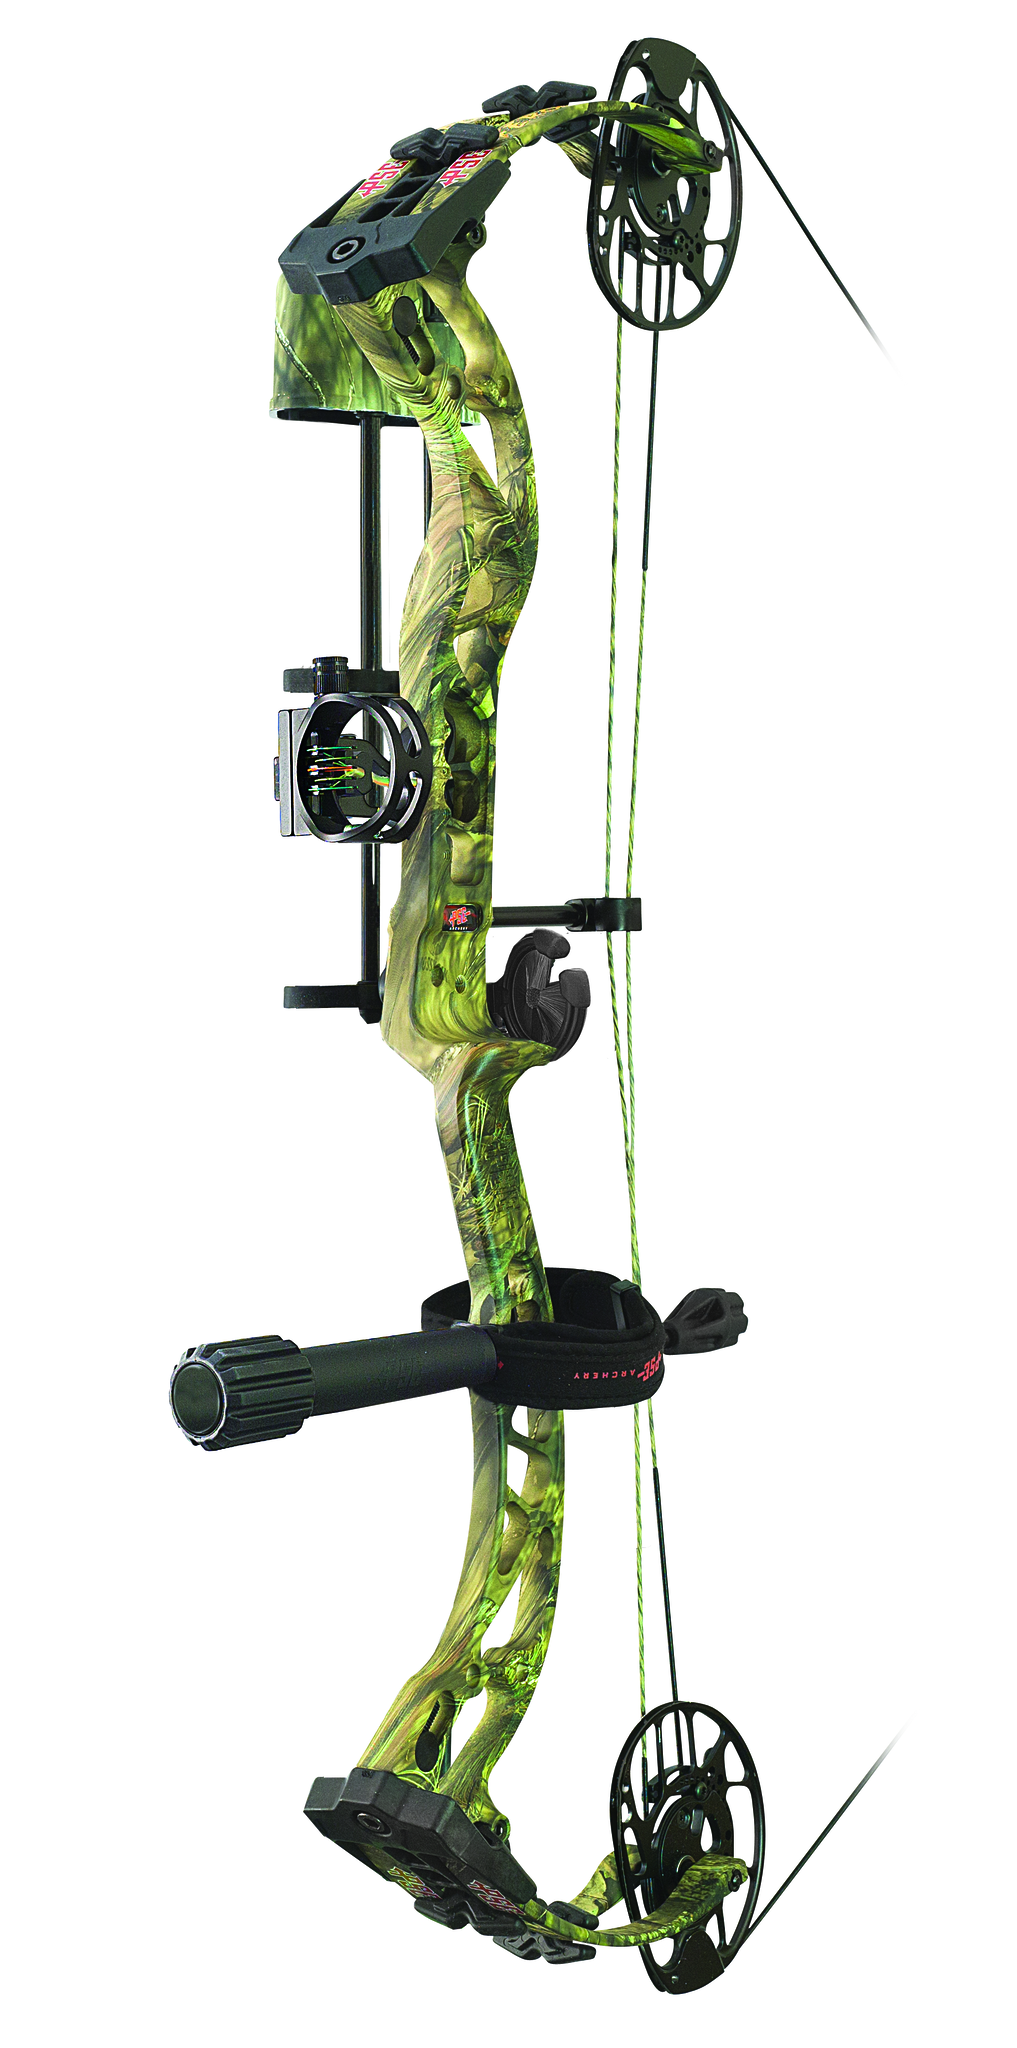 PSE Ferocity Bow RTS - Ready to Shoot